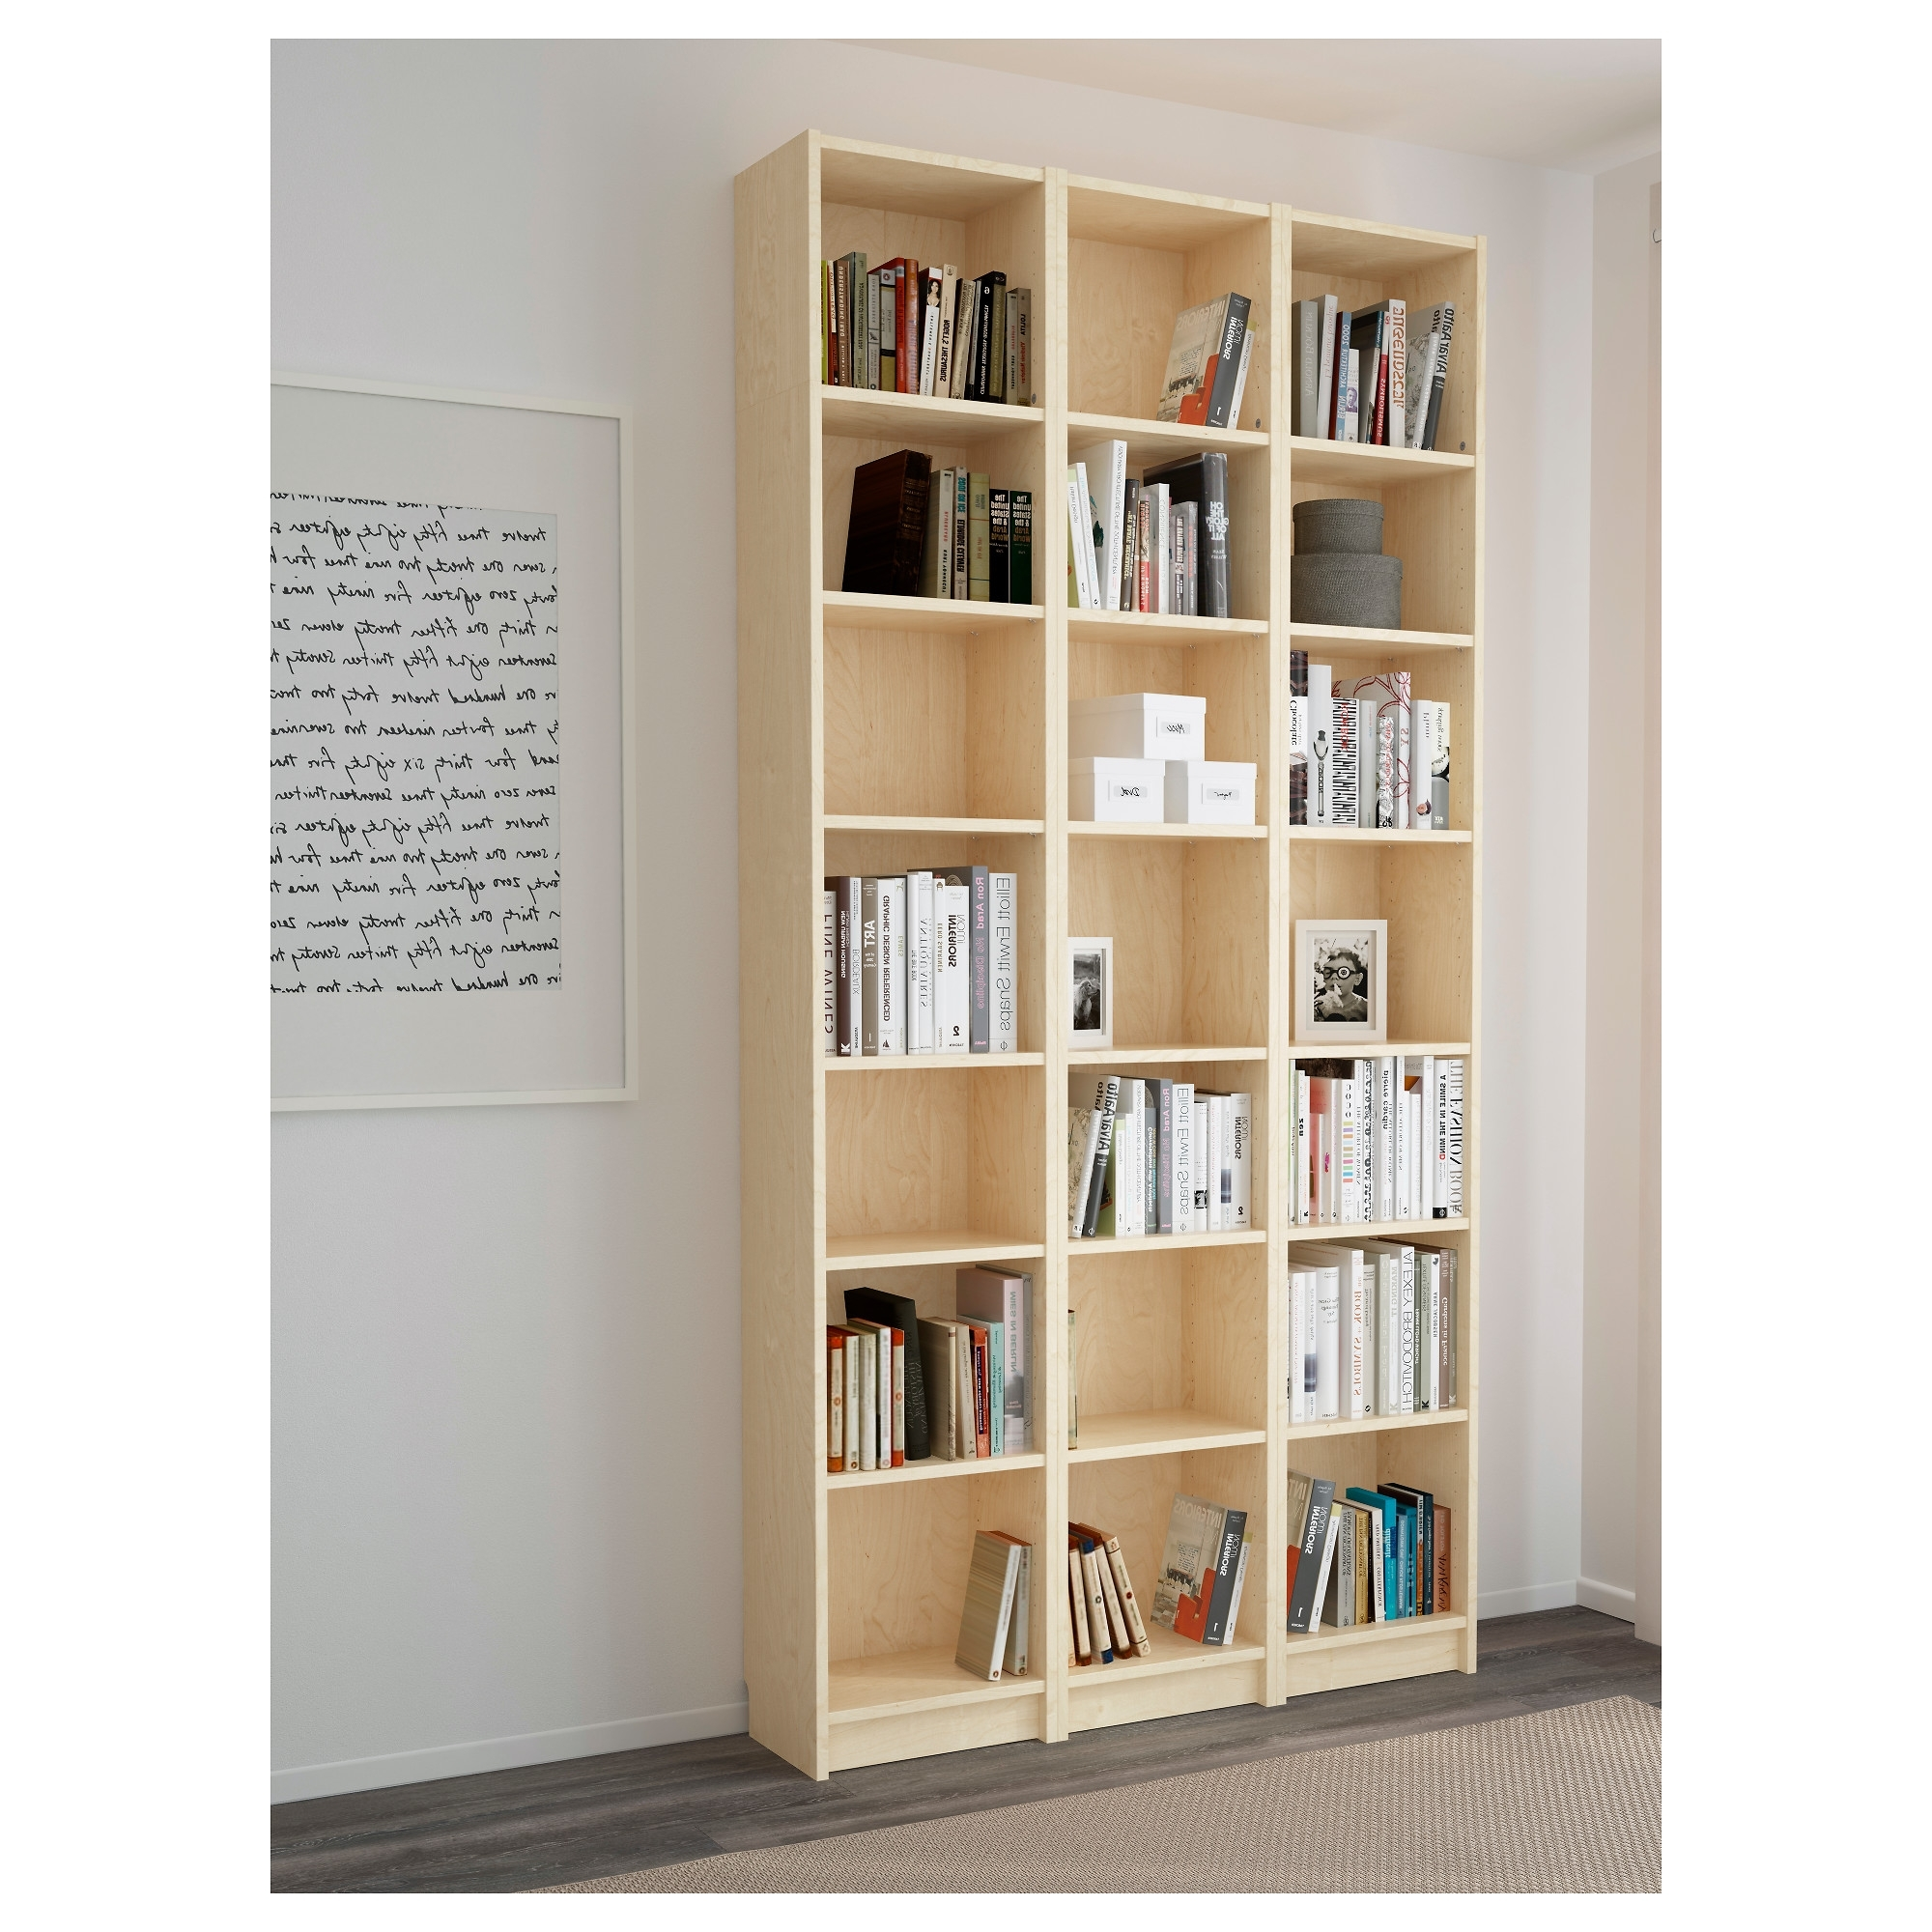 Wooden Bookcases With Regard To Most Popular Wooden Bookcases (View 14 of 15)